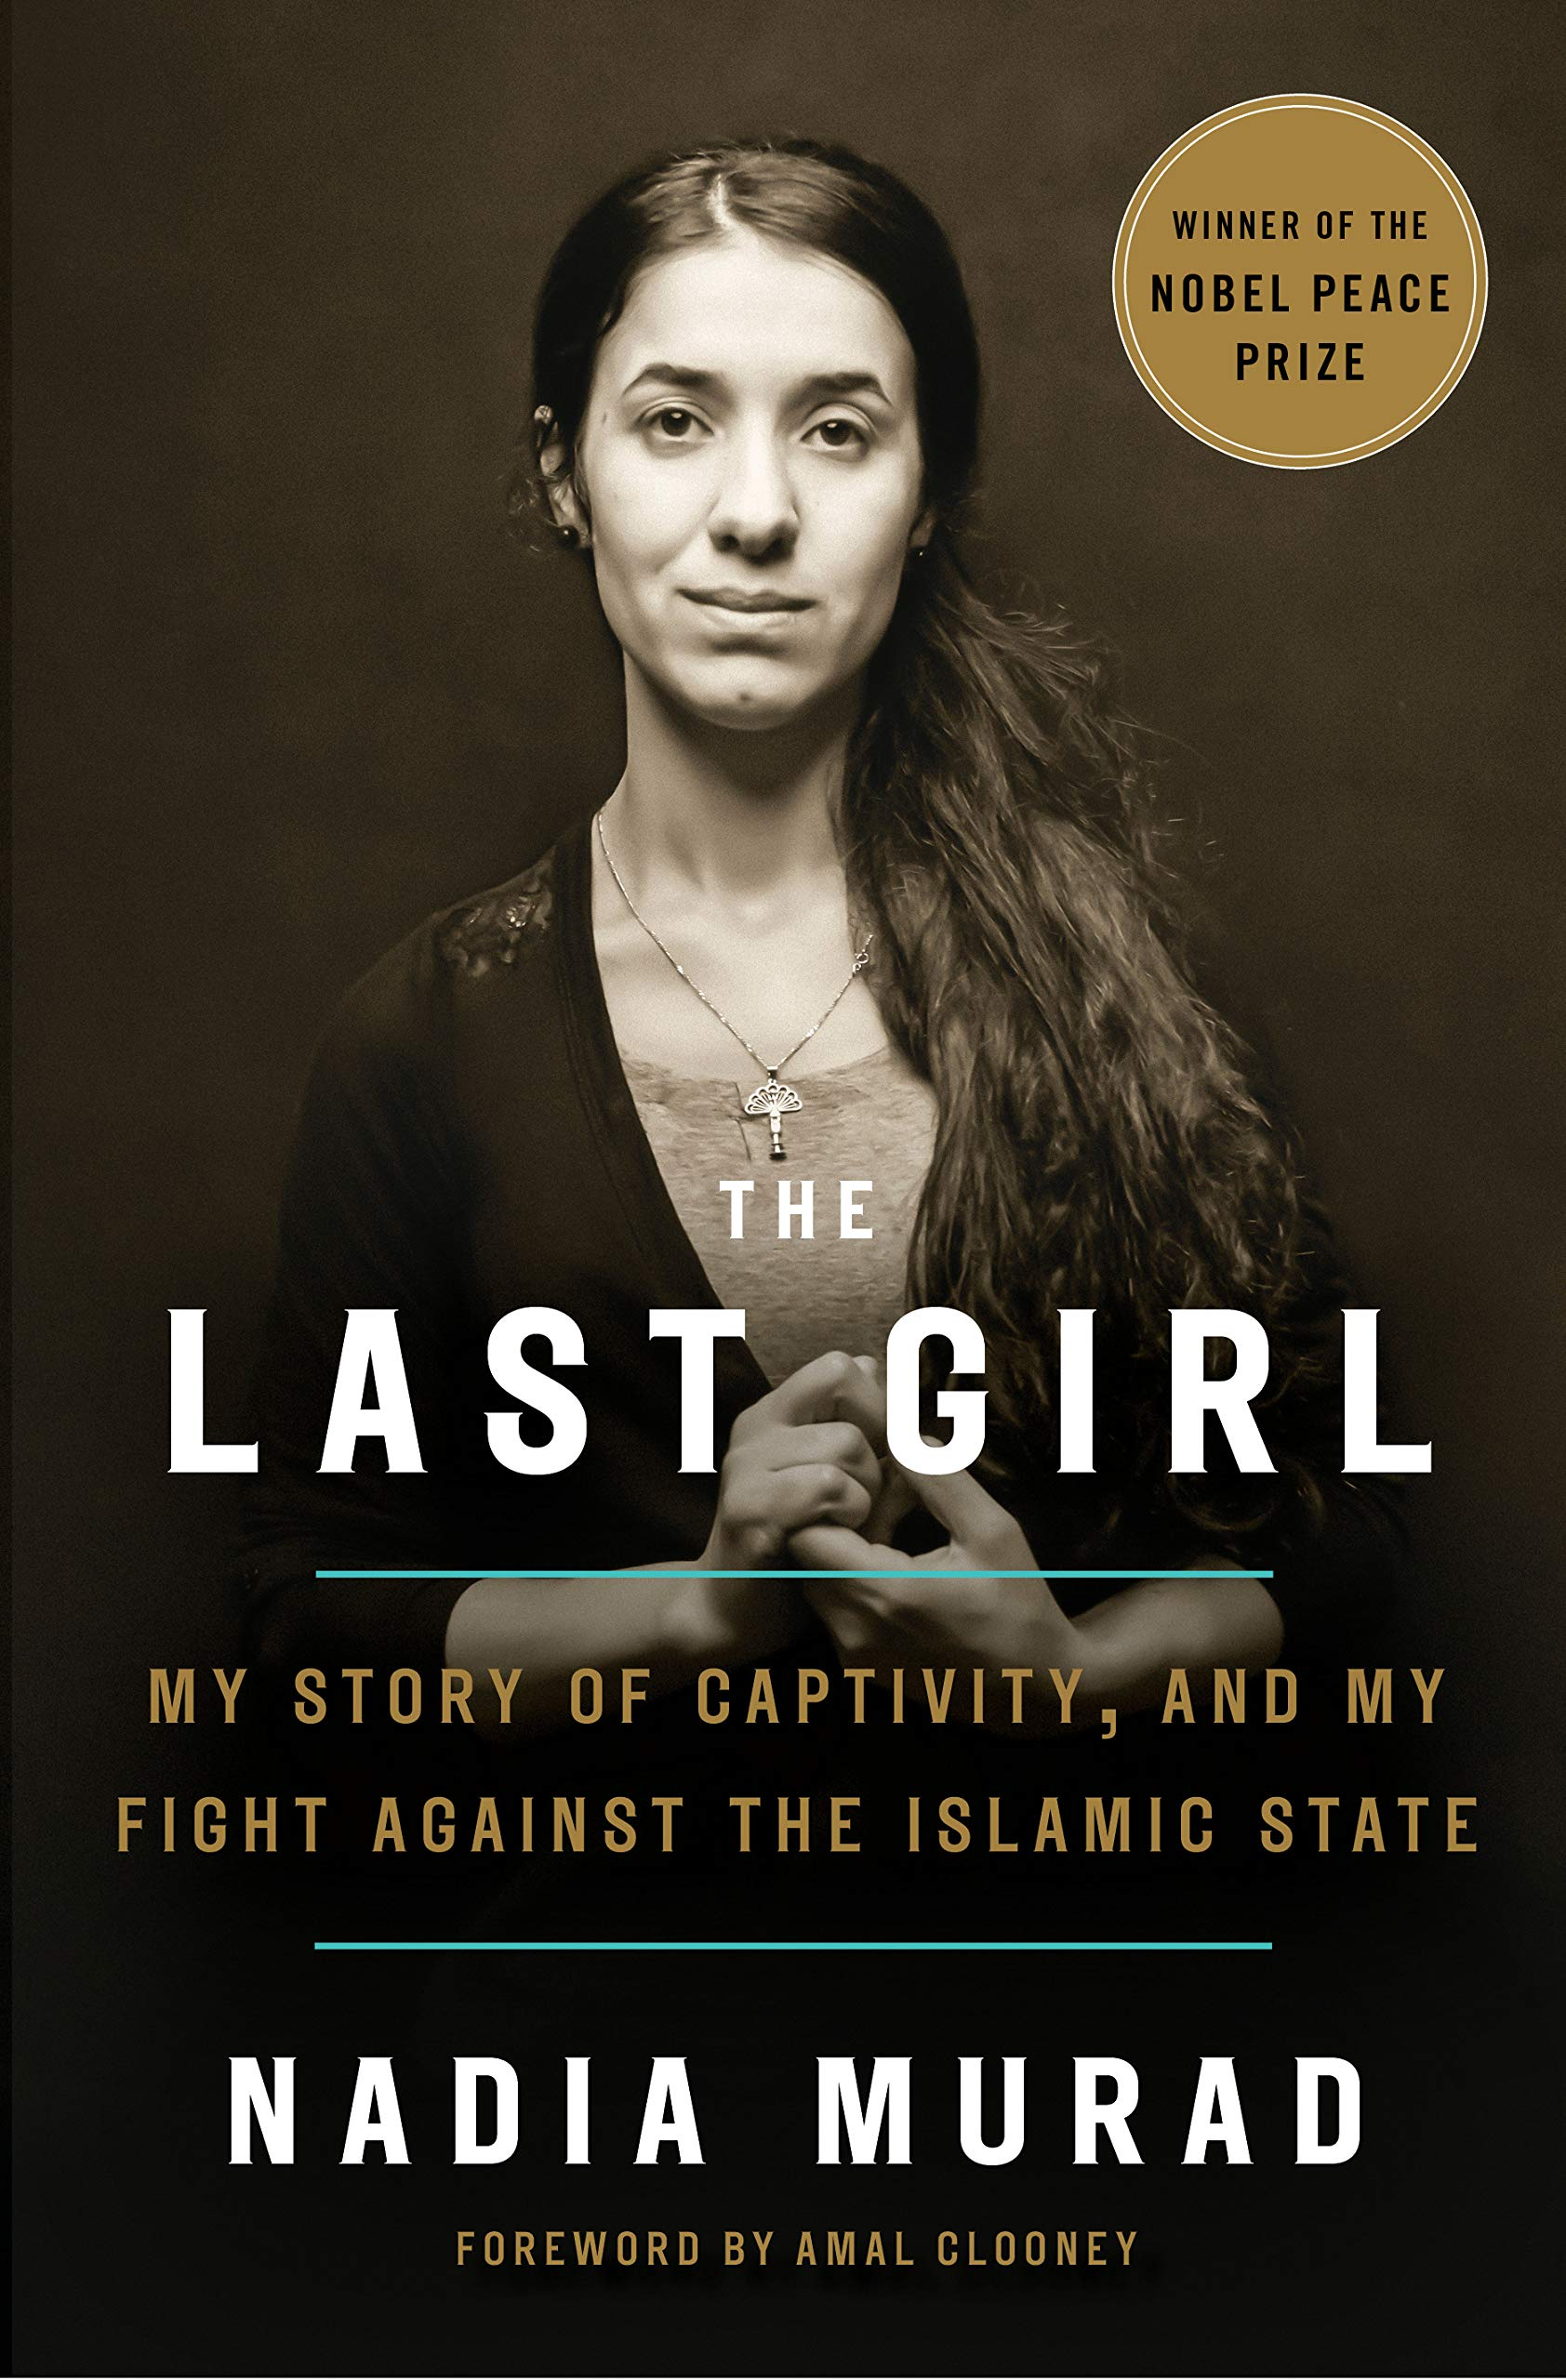 "The Last Girl: My Story of Captivity and my Fight Against the Islamic State - by Nadia Murad""This year's Nobel Peace Prize winner has published a riveting book that captures how her family and community were ripped apart and follows her devastating but courageous path to reconnect with the remaining family that was not murdered. This book brings awareness to the types of devastation that many women and families still endure.""- Jennifer D'Avanzo, Senior Project Manager"